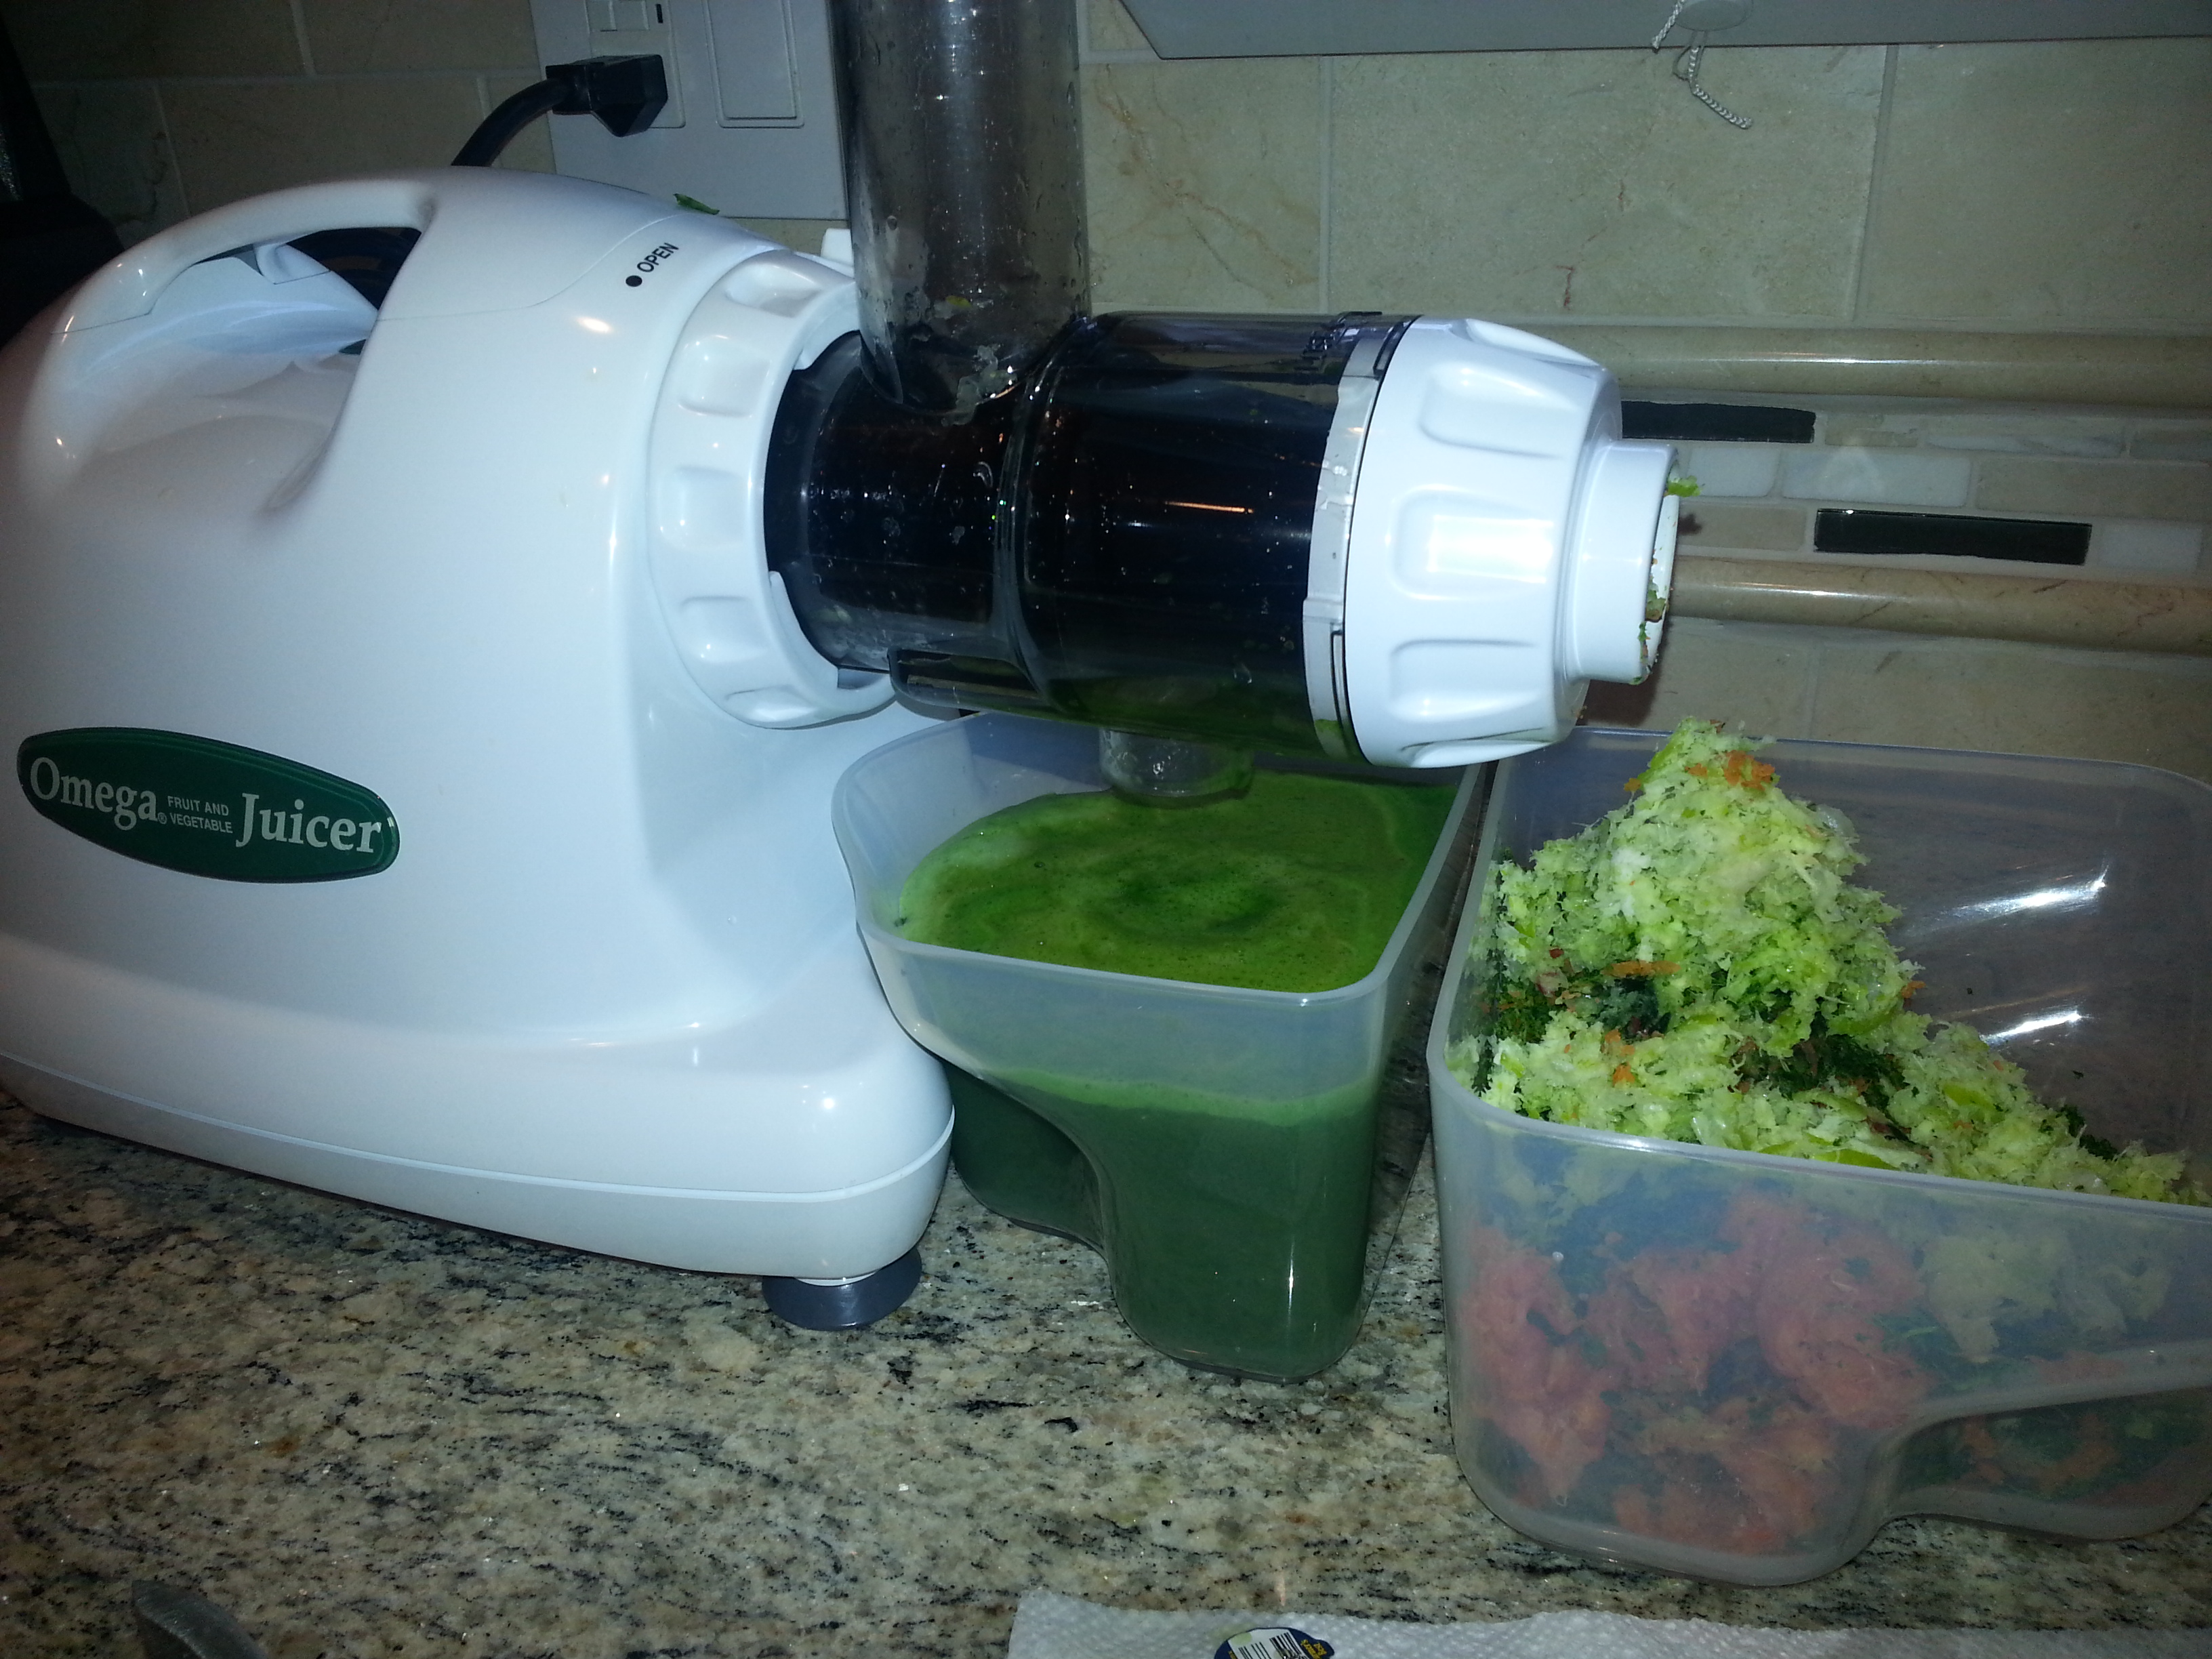 juicing with the omega j8004 juicer